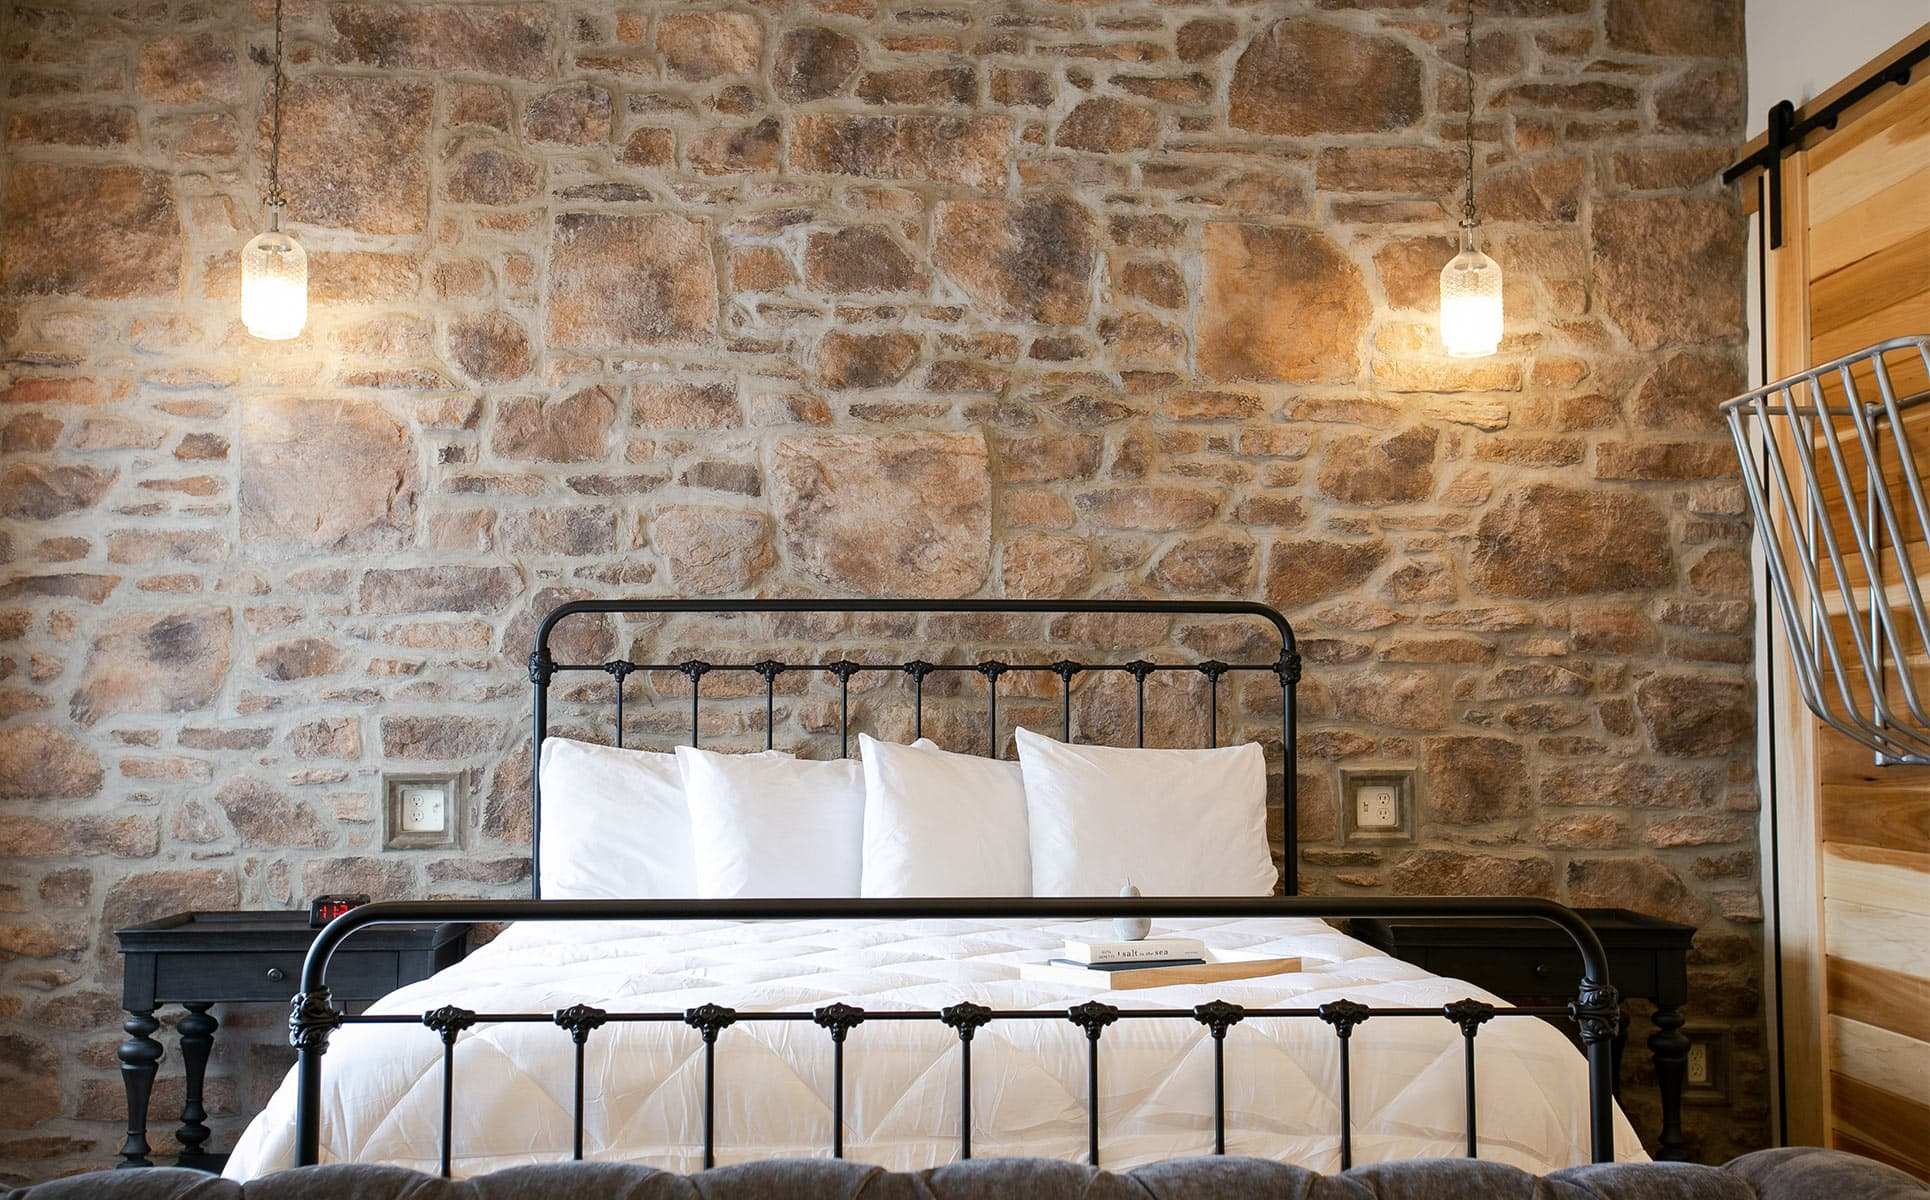 King bed in front of stone wall with pendant lights